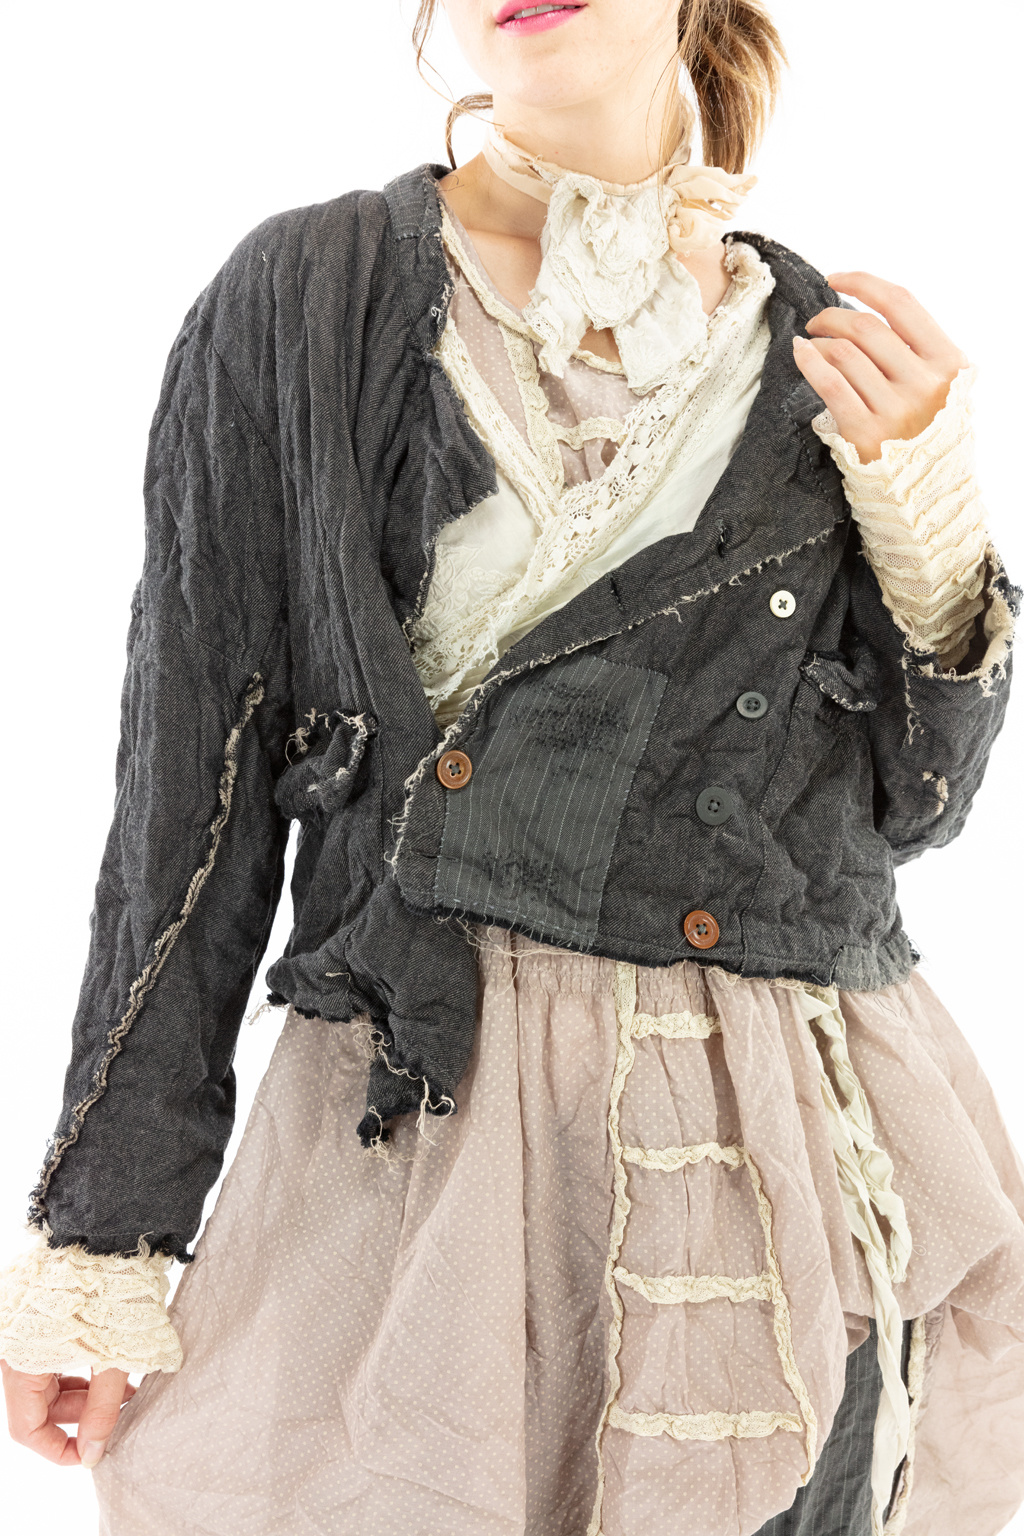 Woven Cotton Cropped Declan Jacket with Patches, Raw Edges, Hand Distressing, Double Brested Mixed Button Front, Magnolia Pearl